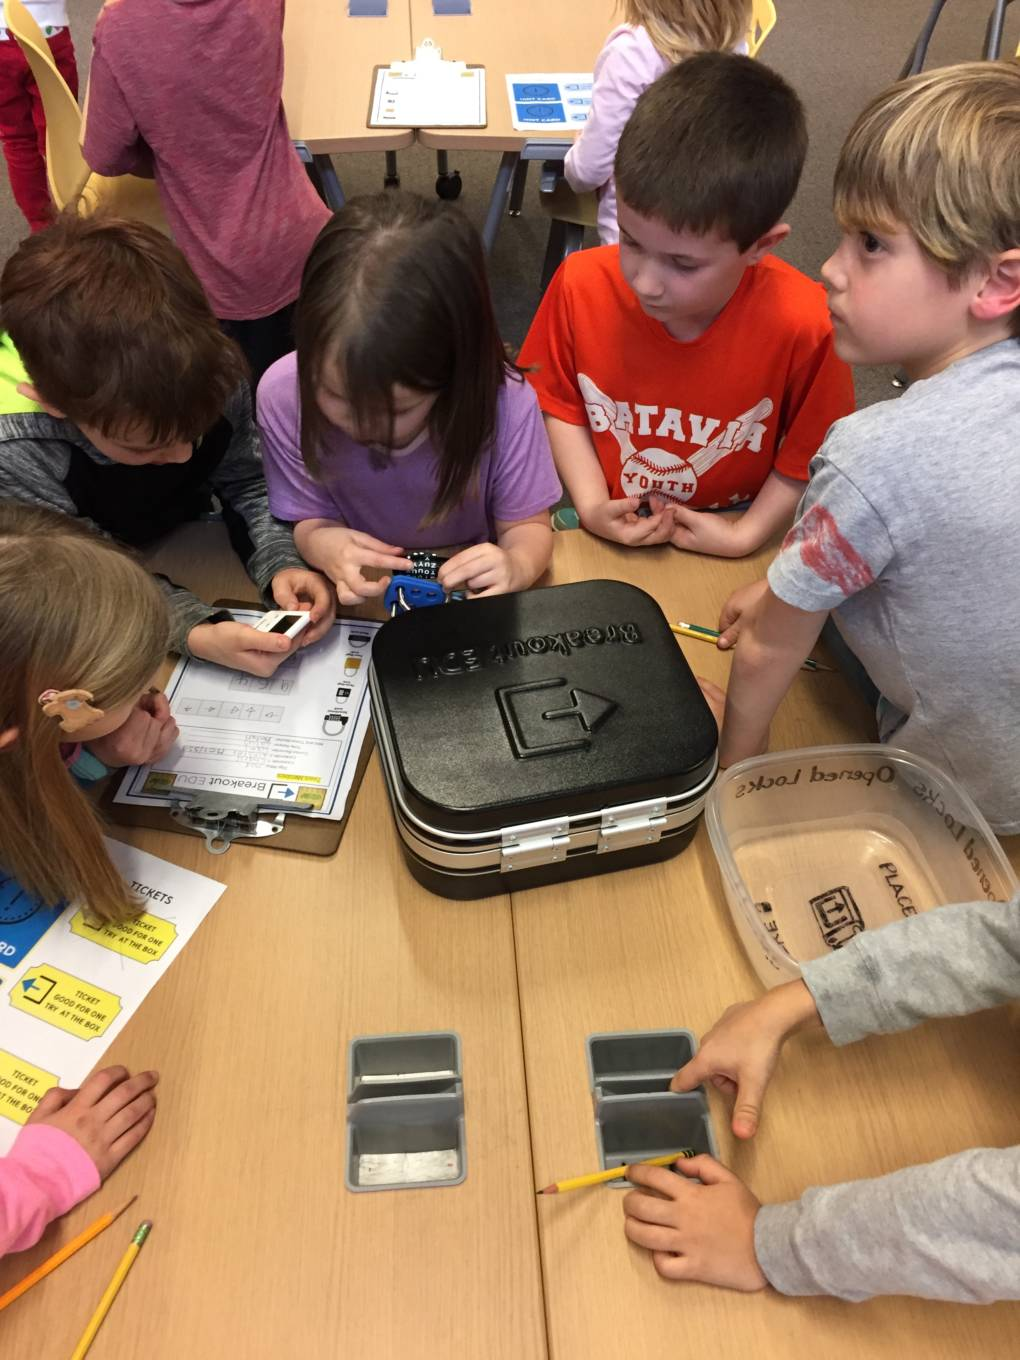 Teachers often help students decide who is going to open each lock ahead of time to prevent tears with younger students.